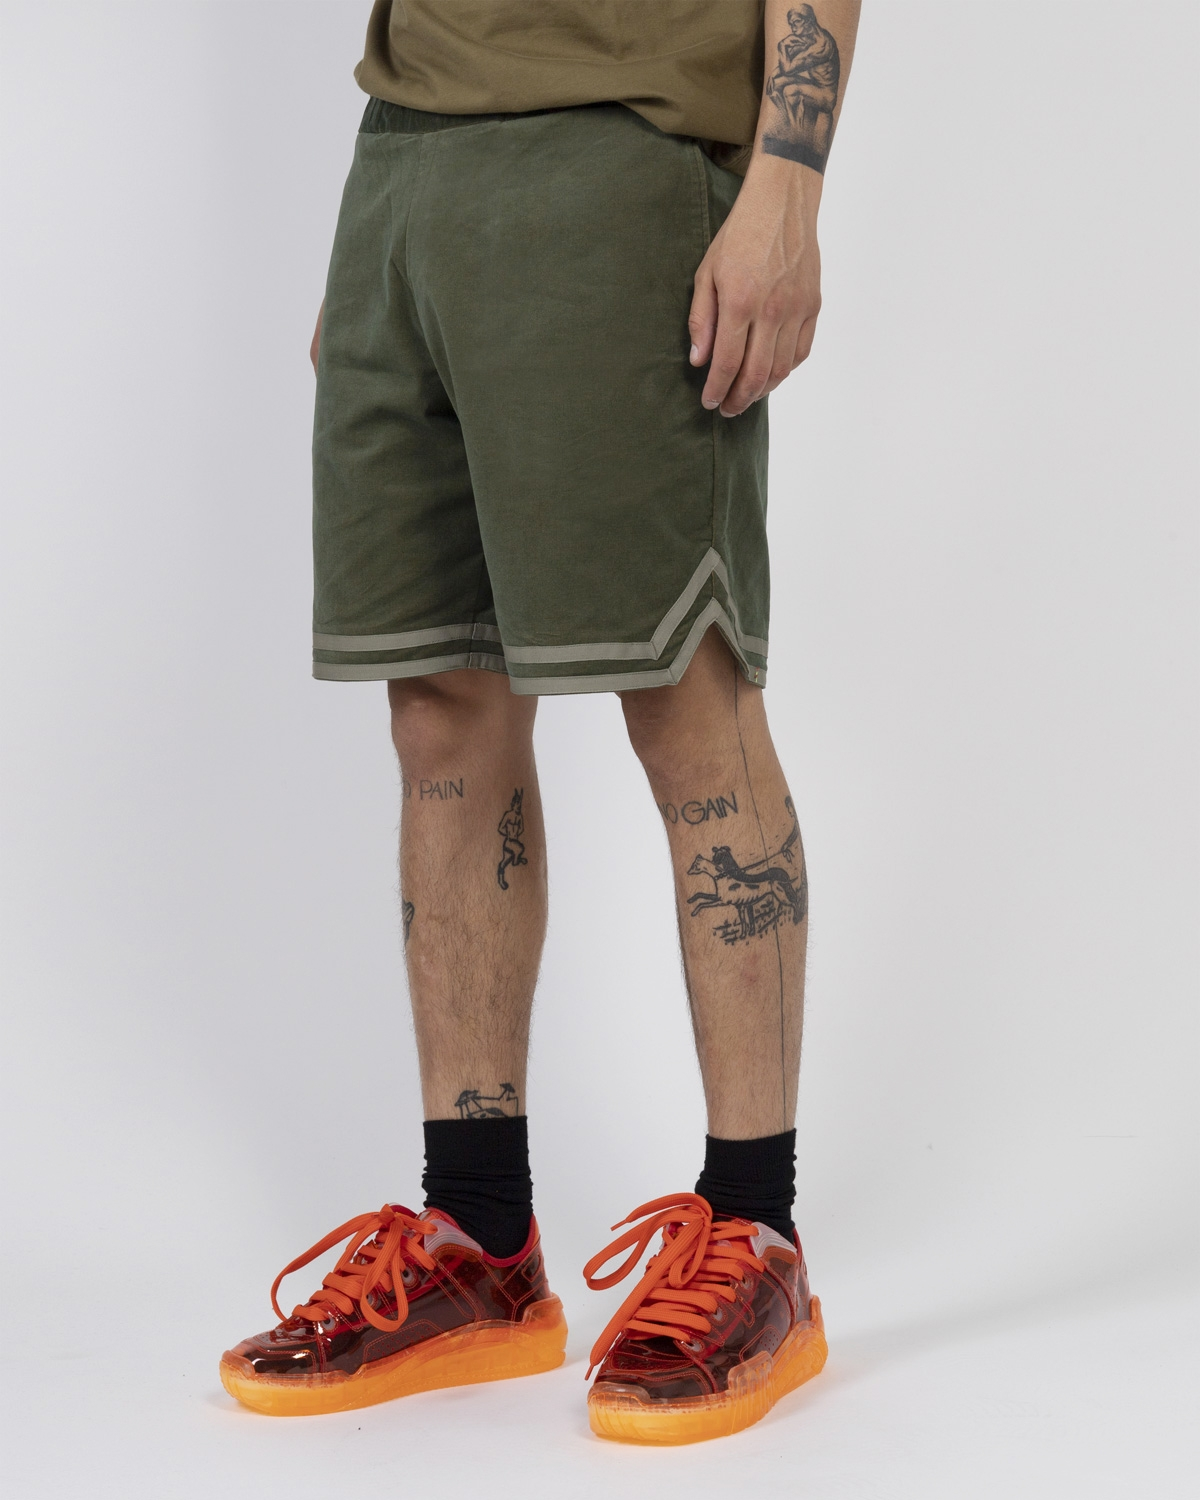 CLOT BASKETBALL SHORTS